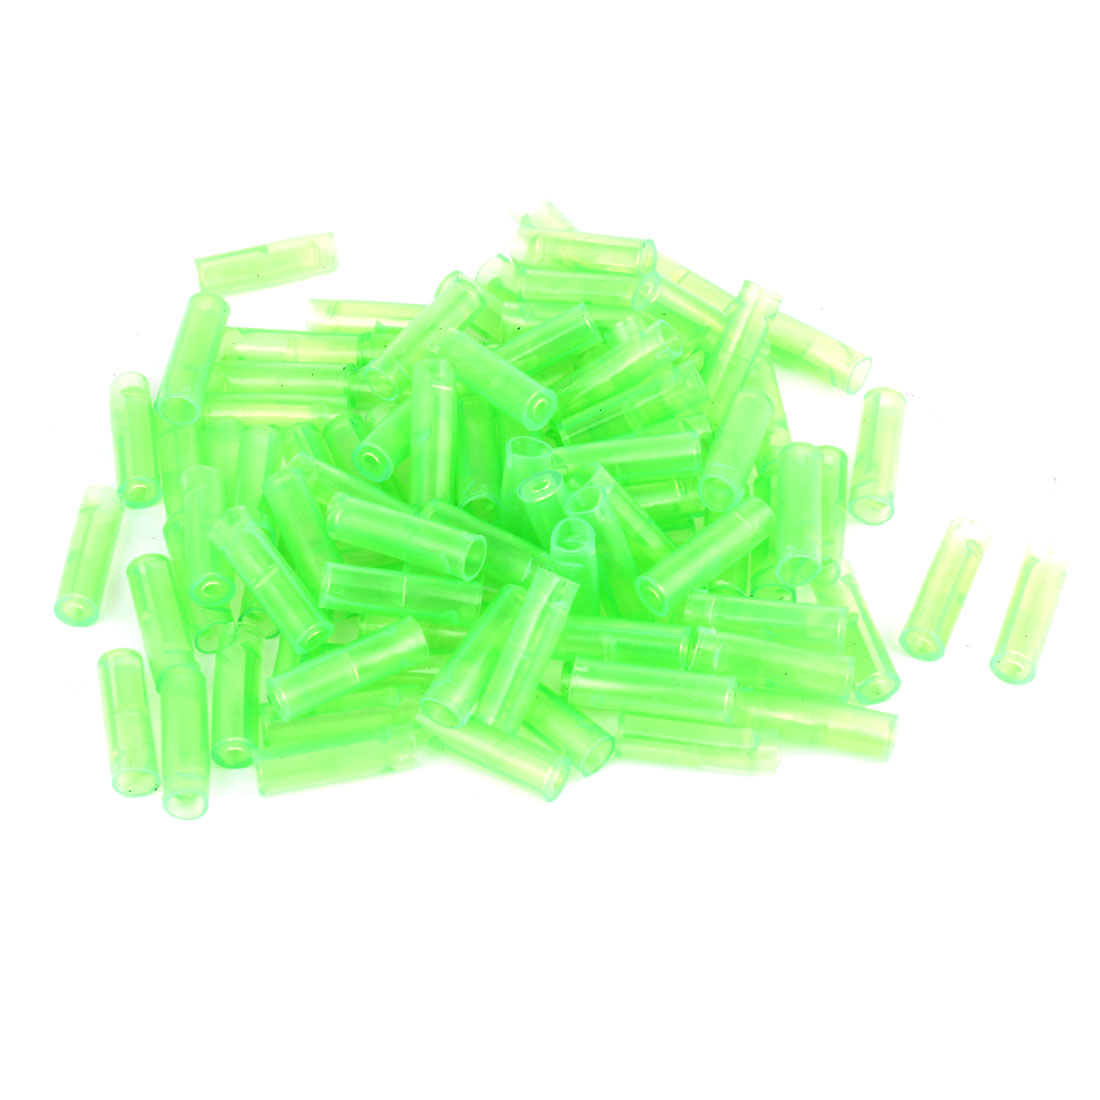 100 Pcs Green 6mm Diameter PVC Crimp Terminal Cover Sleeves for Car